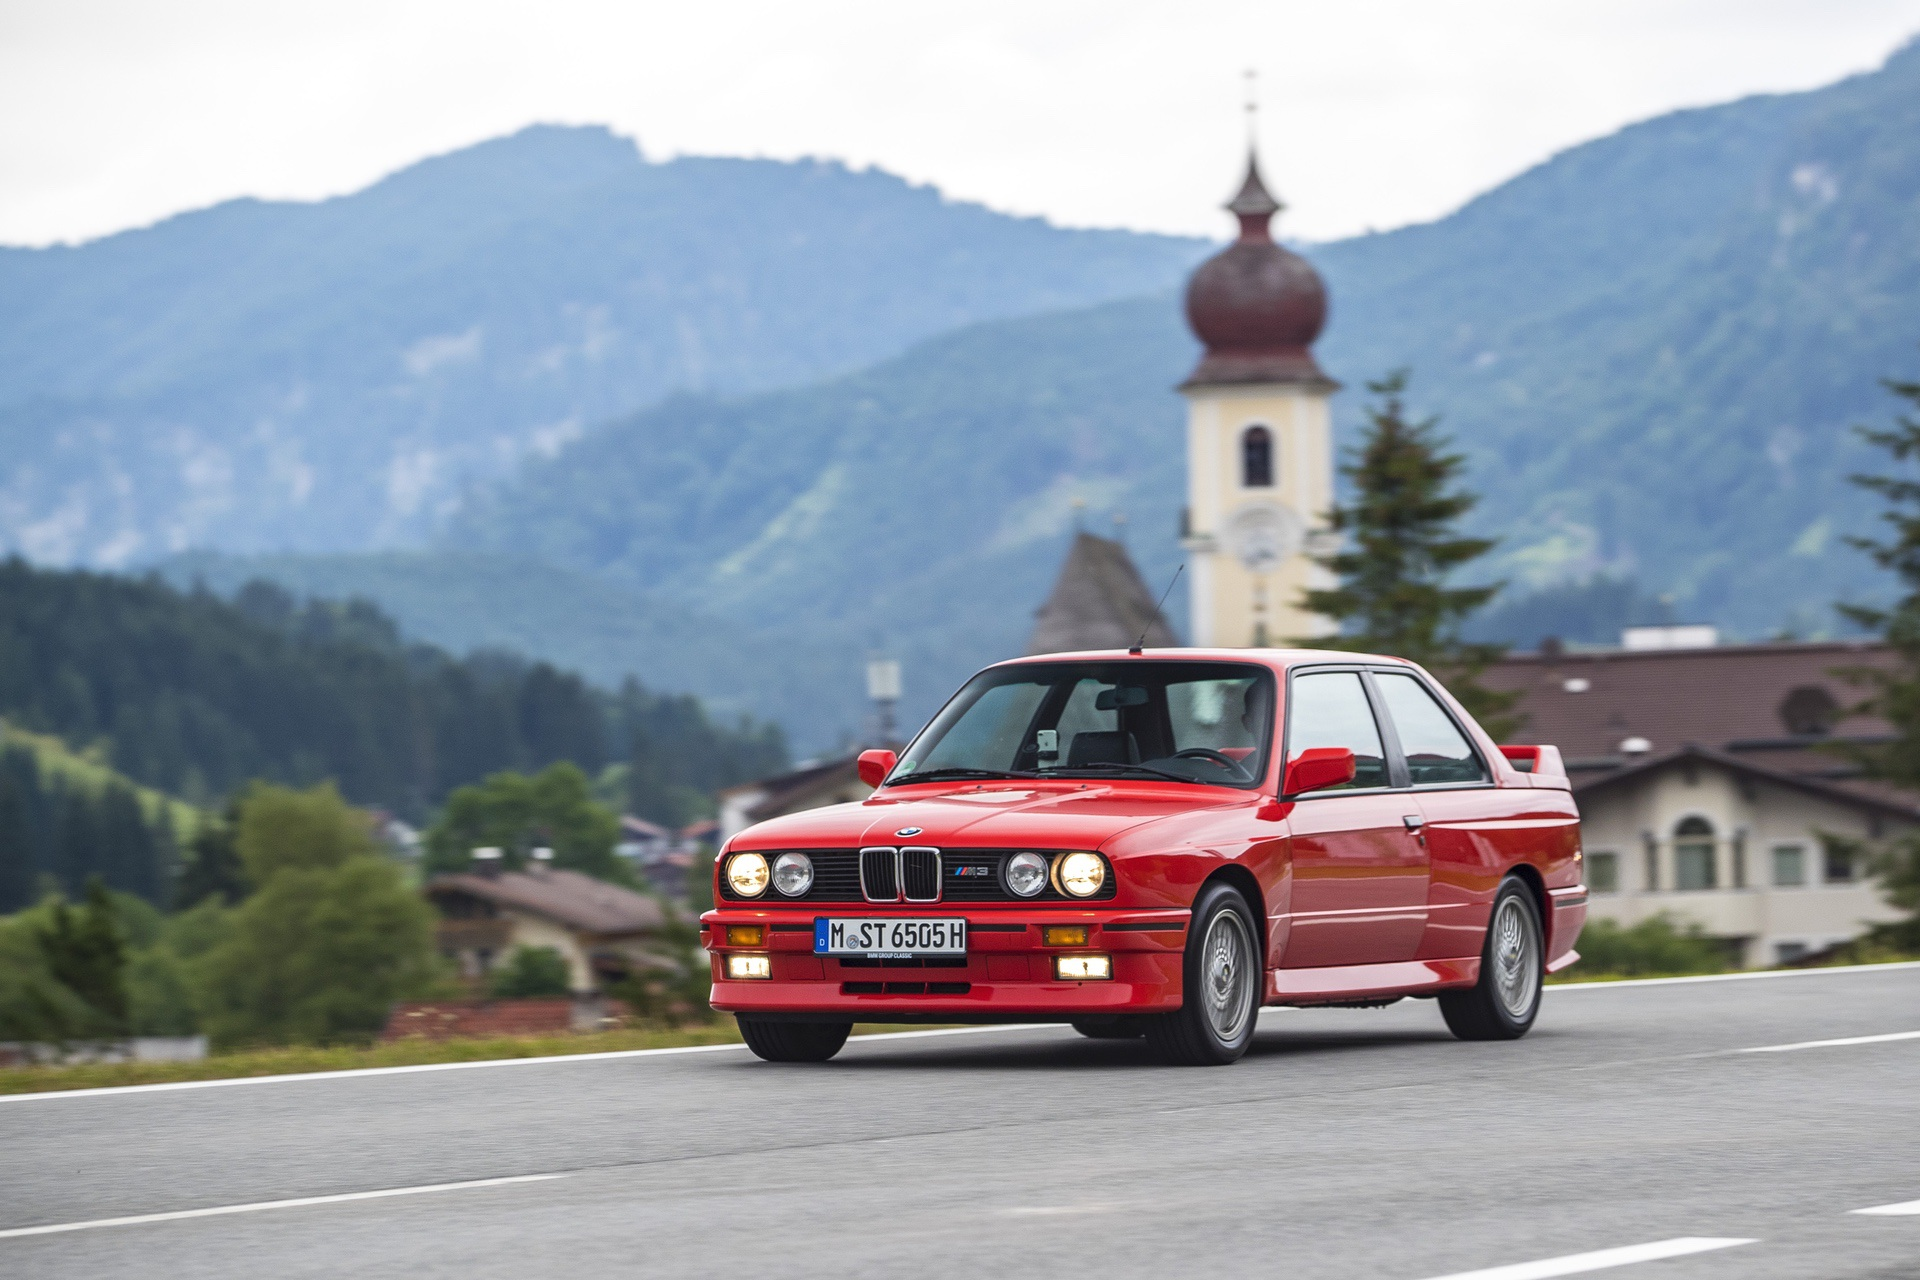 5 Reasons to Own an E30 M3 – The Iconic Bimmer